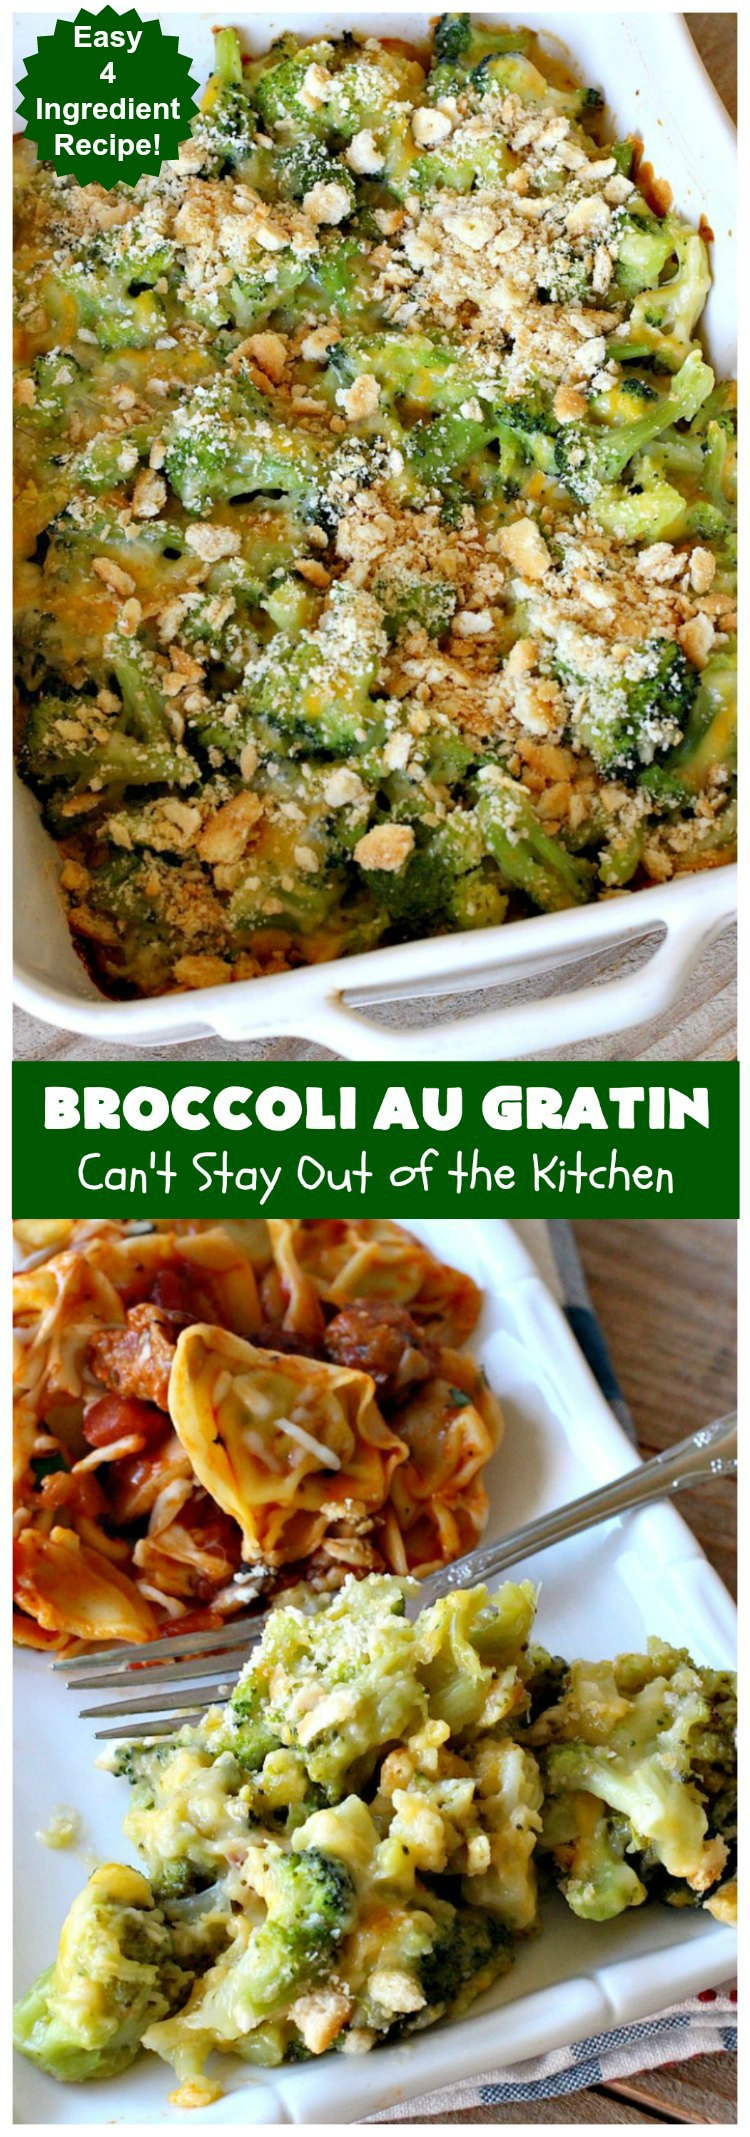 Broccoli Au Gratin | Can't Stay Out of the Kitchen